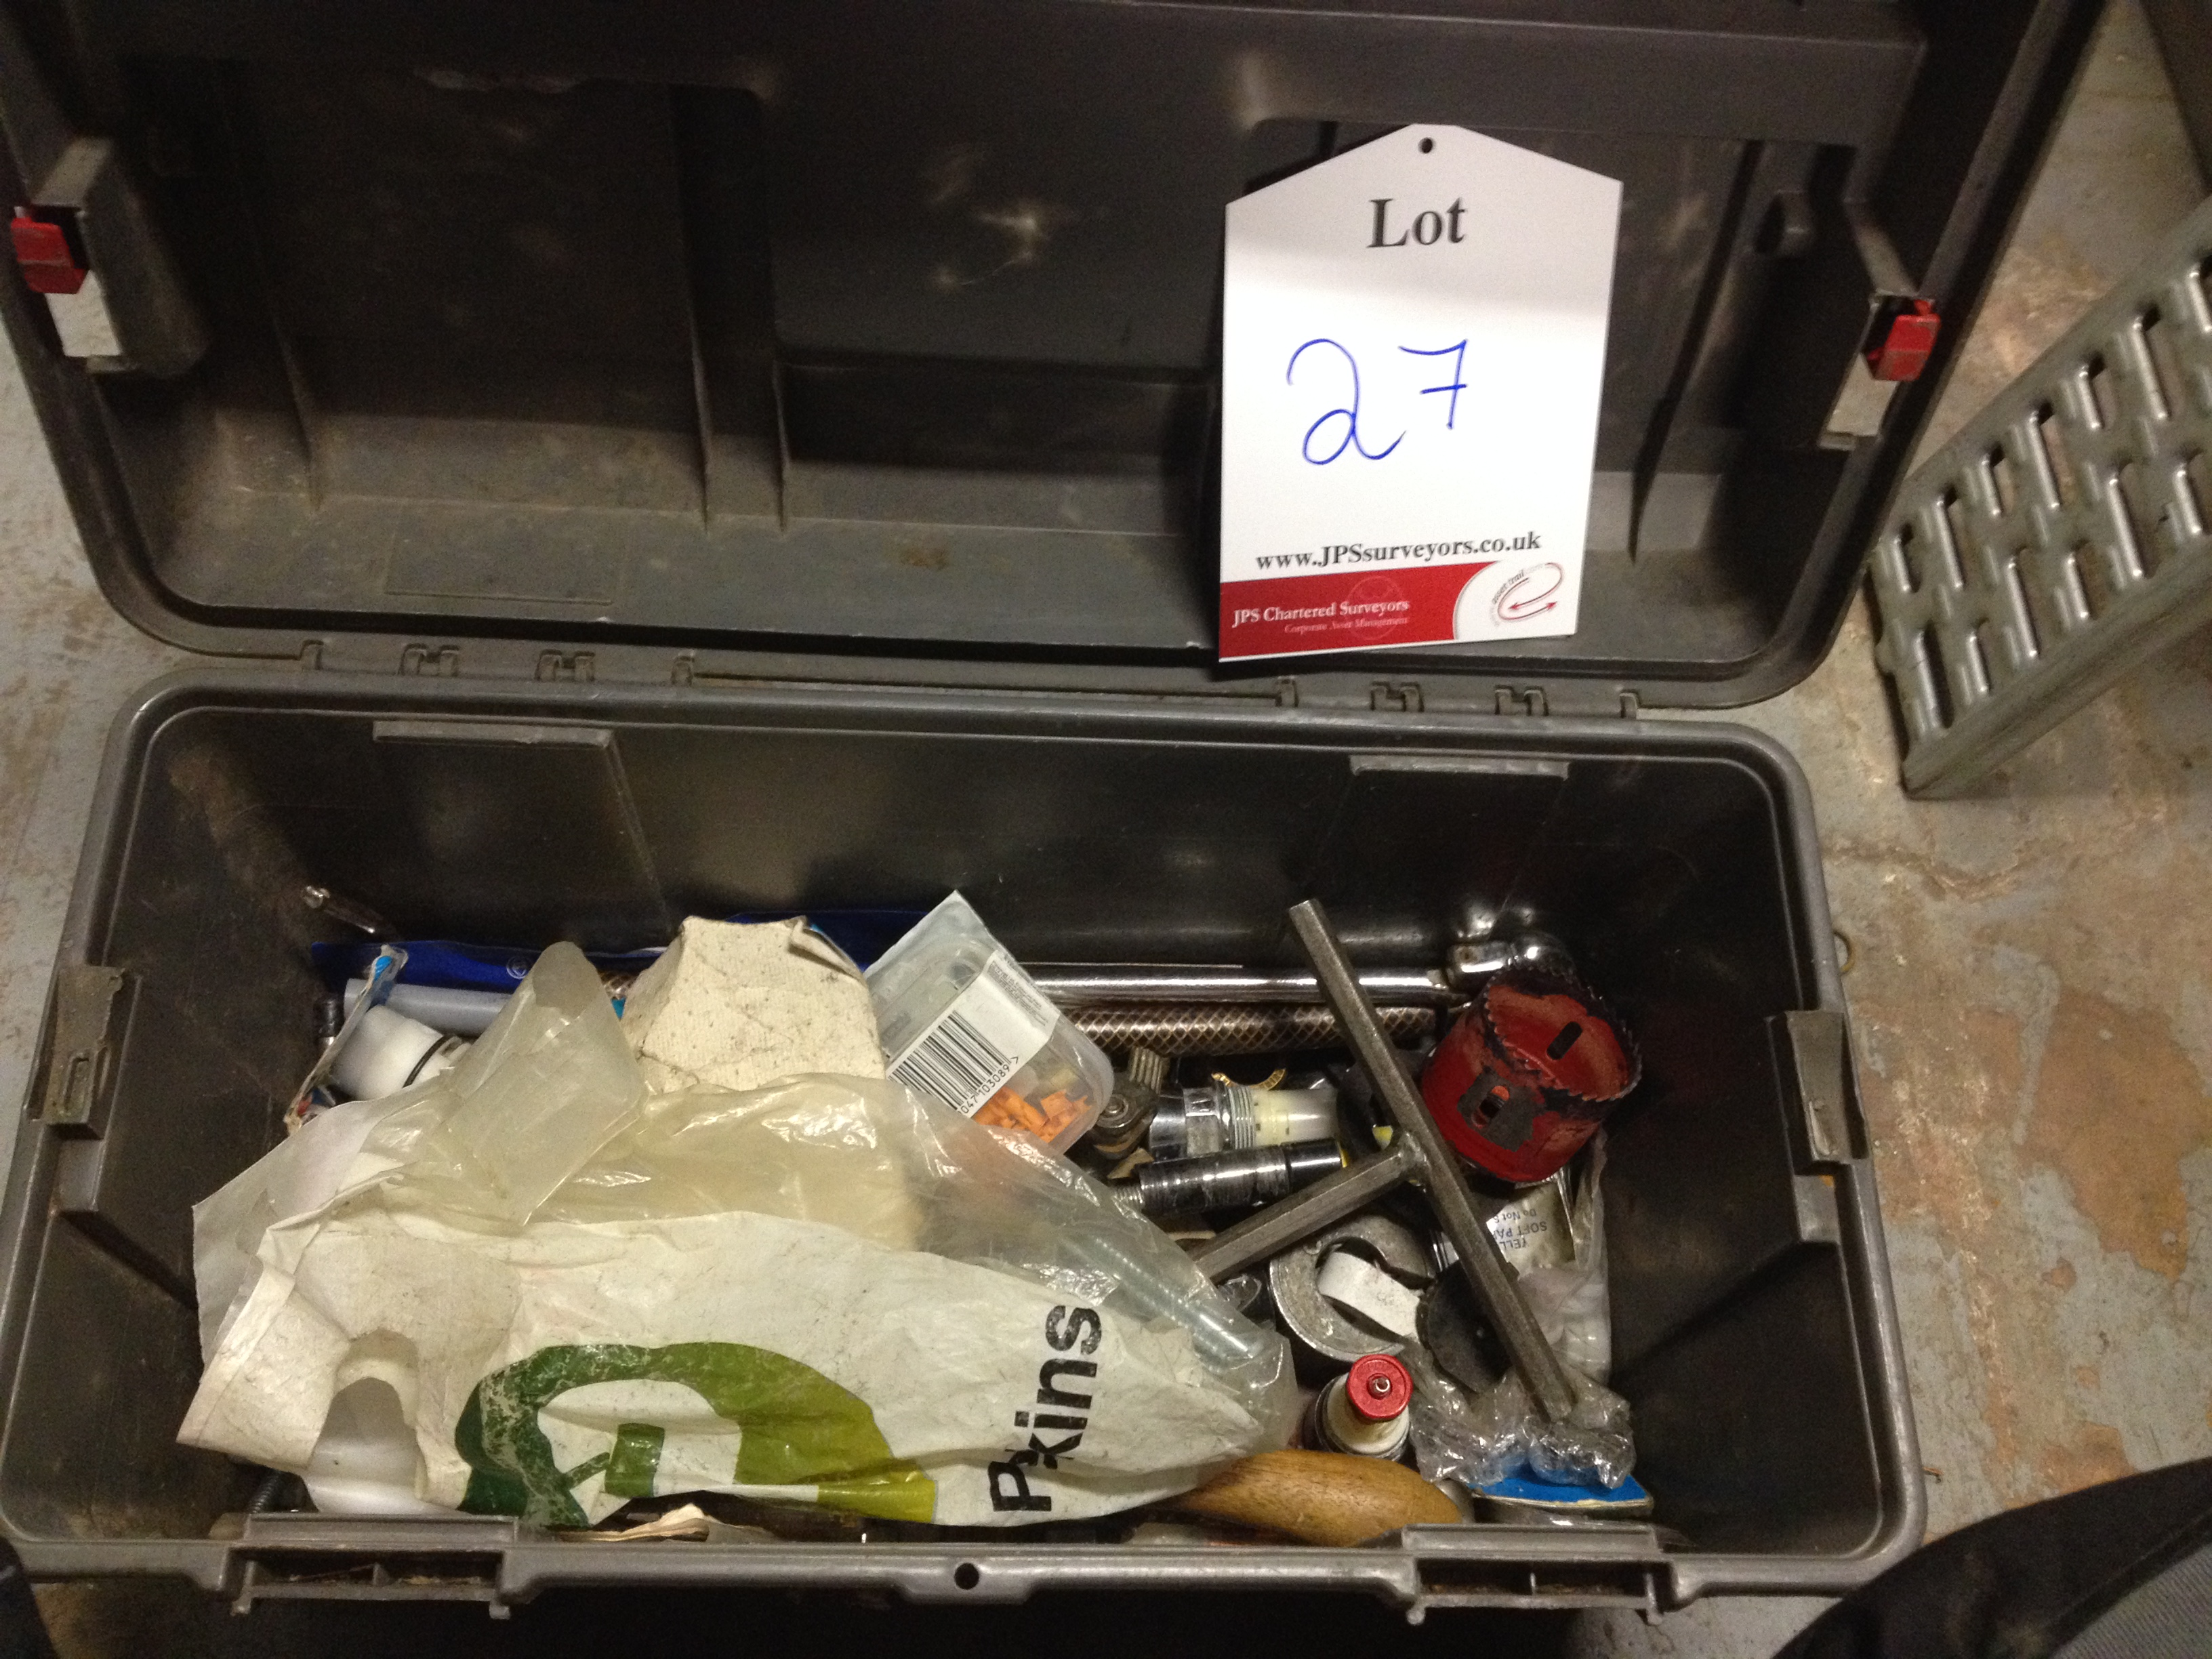 1 x Tool box with various tools and accessories inc Screwdrivers & Drill Bits - Image 2 of 3